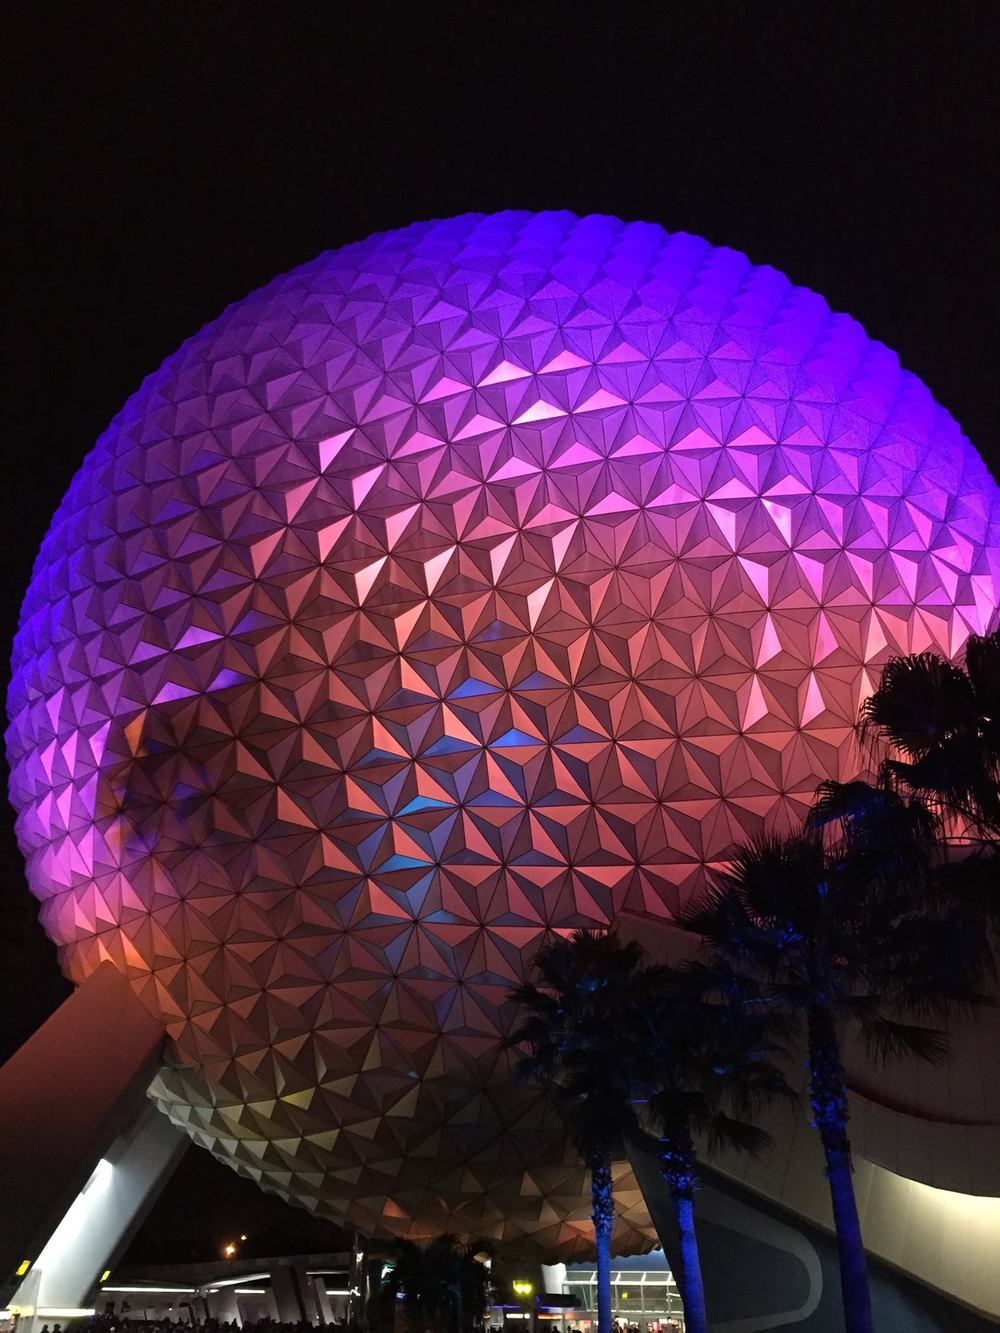 The Golf Ball at night, Epcot